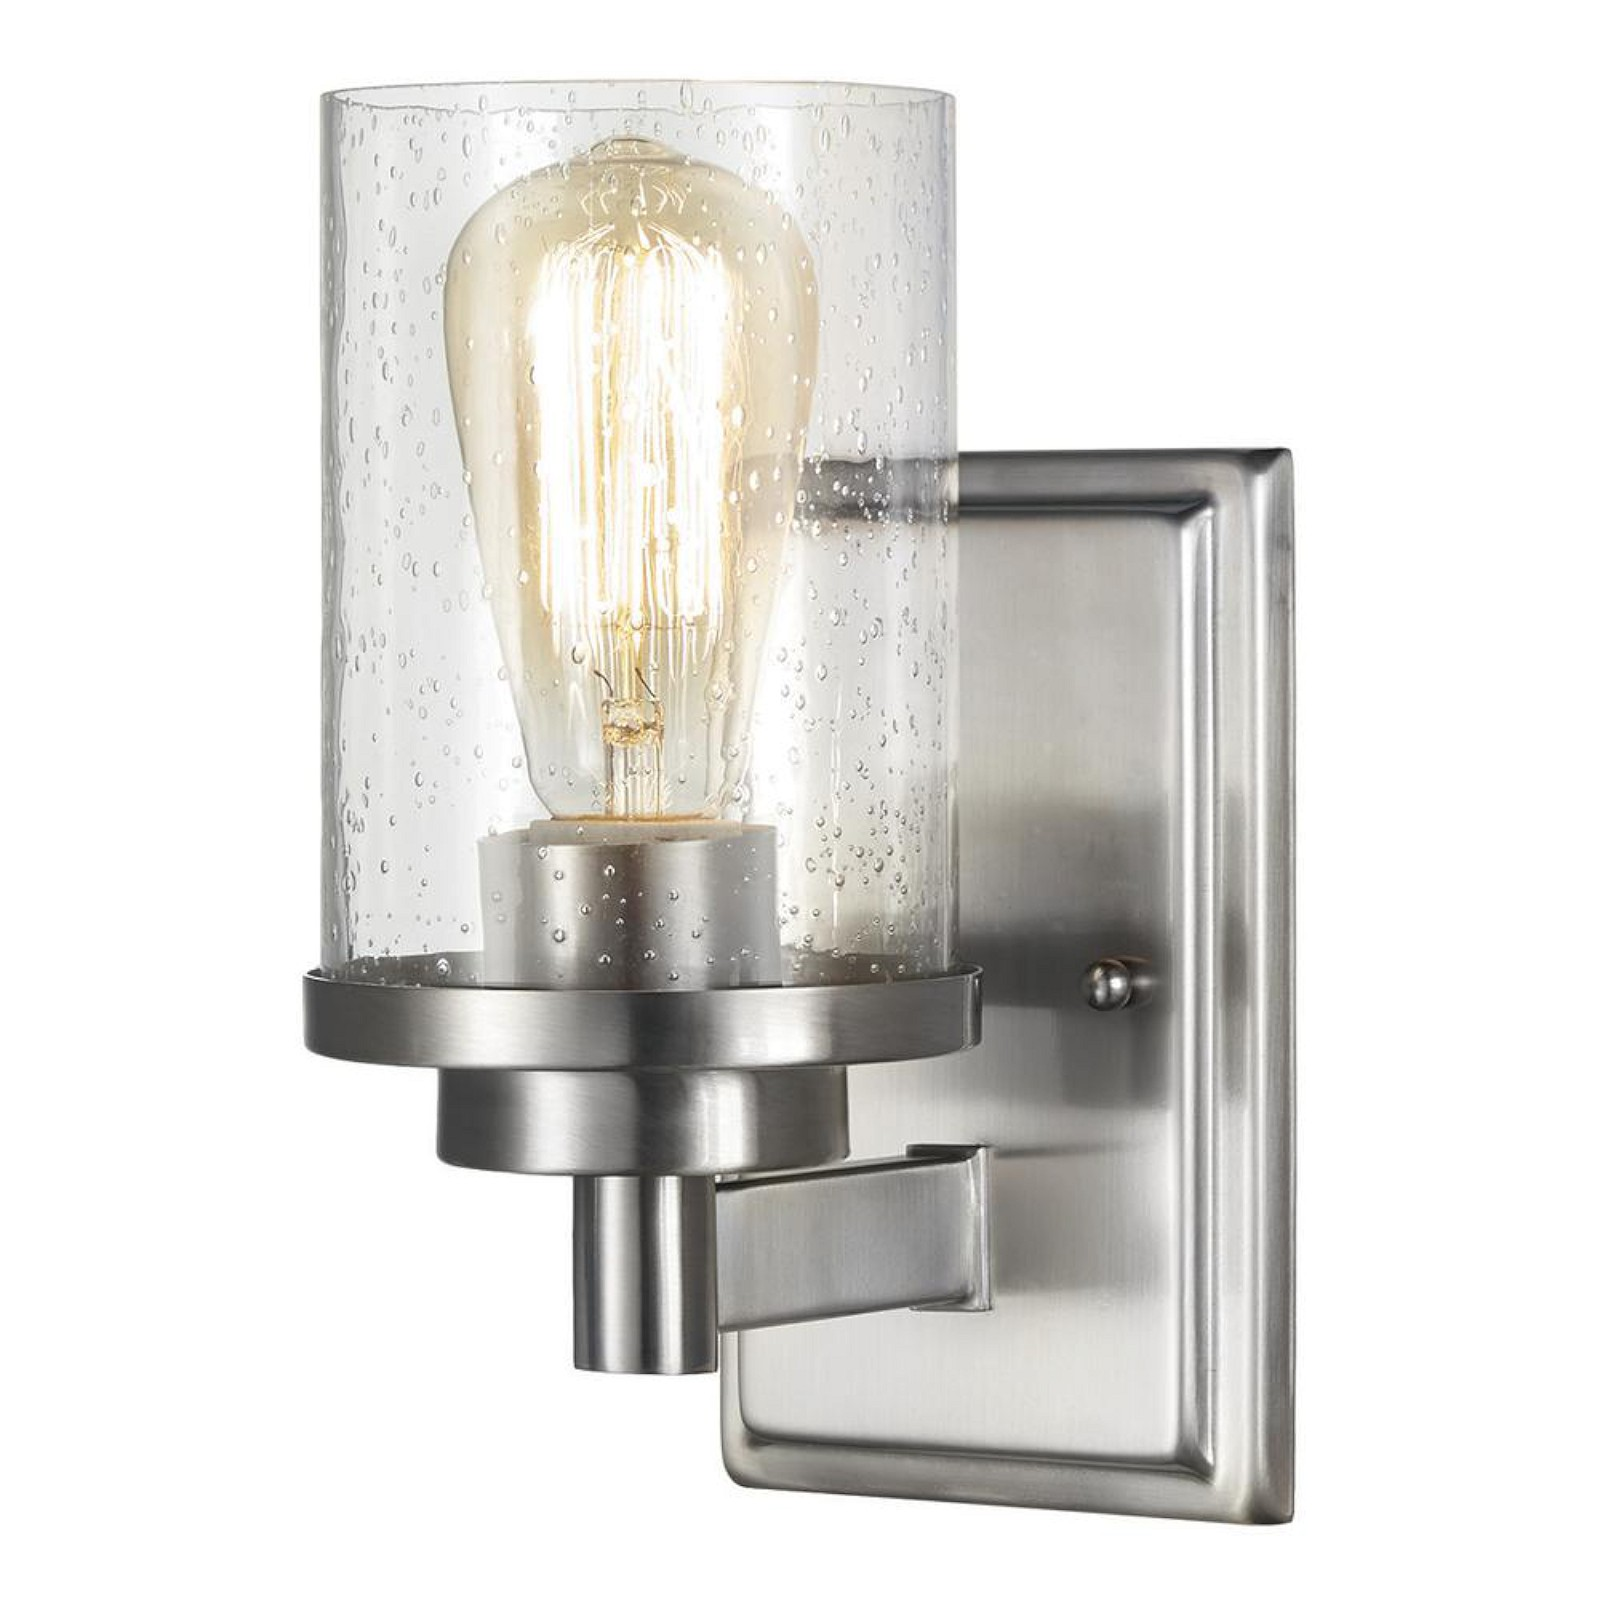 Home decorators collection 1 light brushed nickel wall sconce